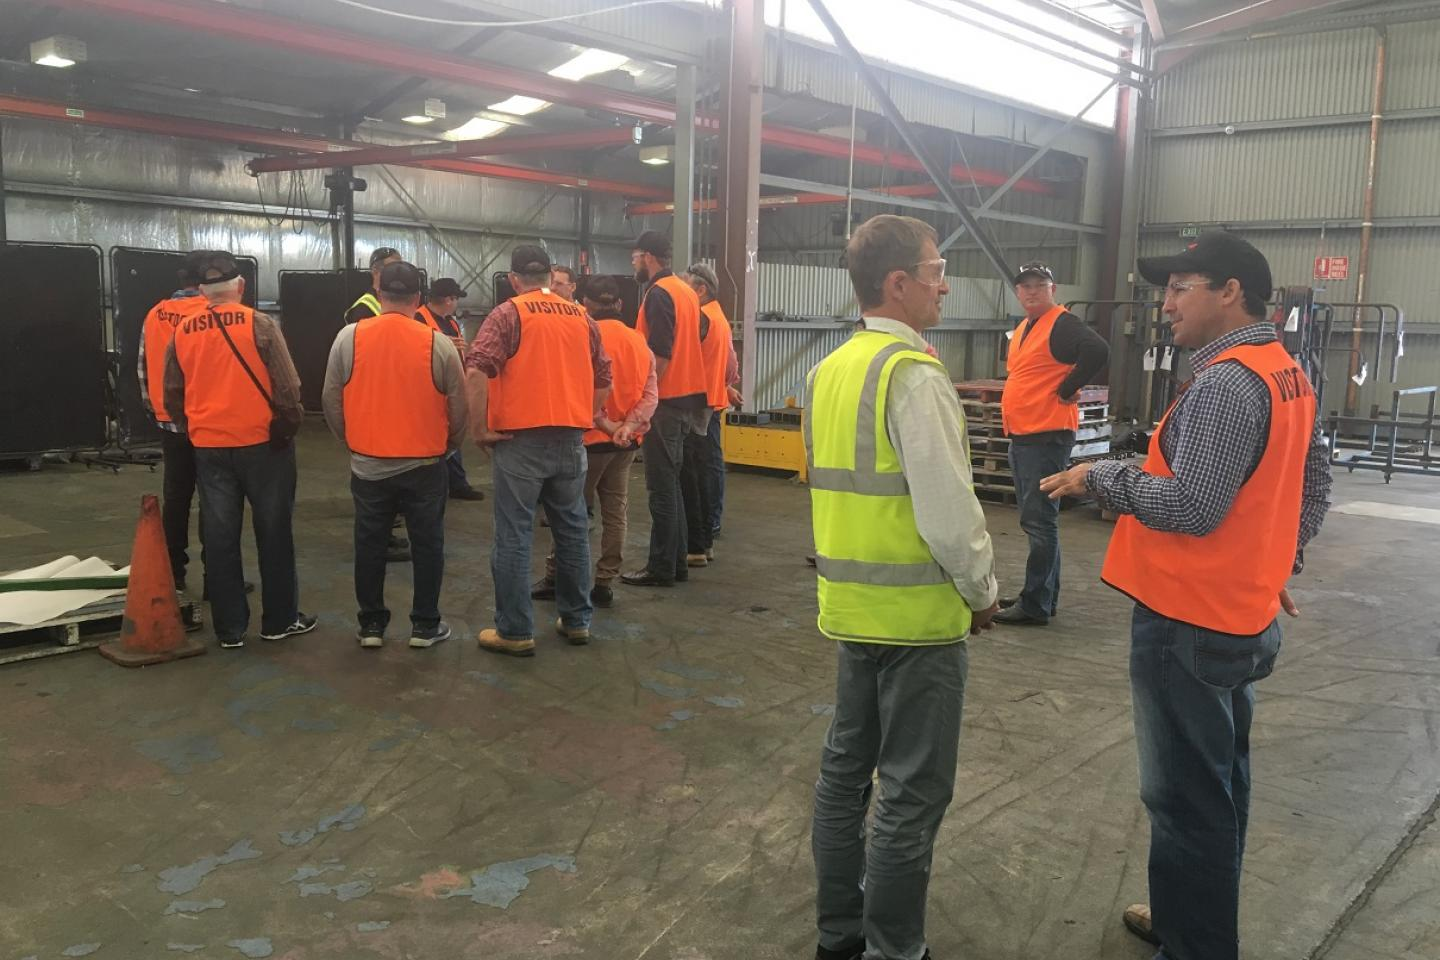 Ausplow sales and marketing manager Chris Blight (yellow safety vest) provided a detailed explanation of the Ausplow DBS precision seeder and an insight into some of the R & D programs Ausplow is involved in.